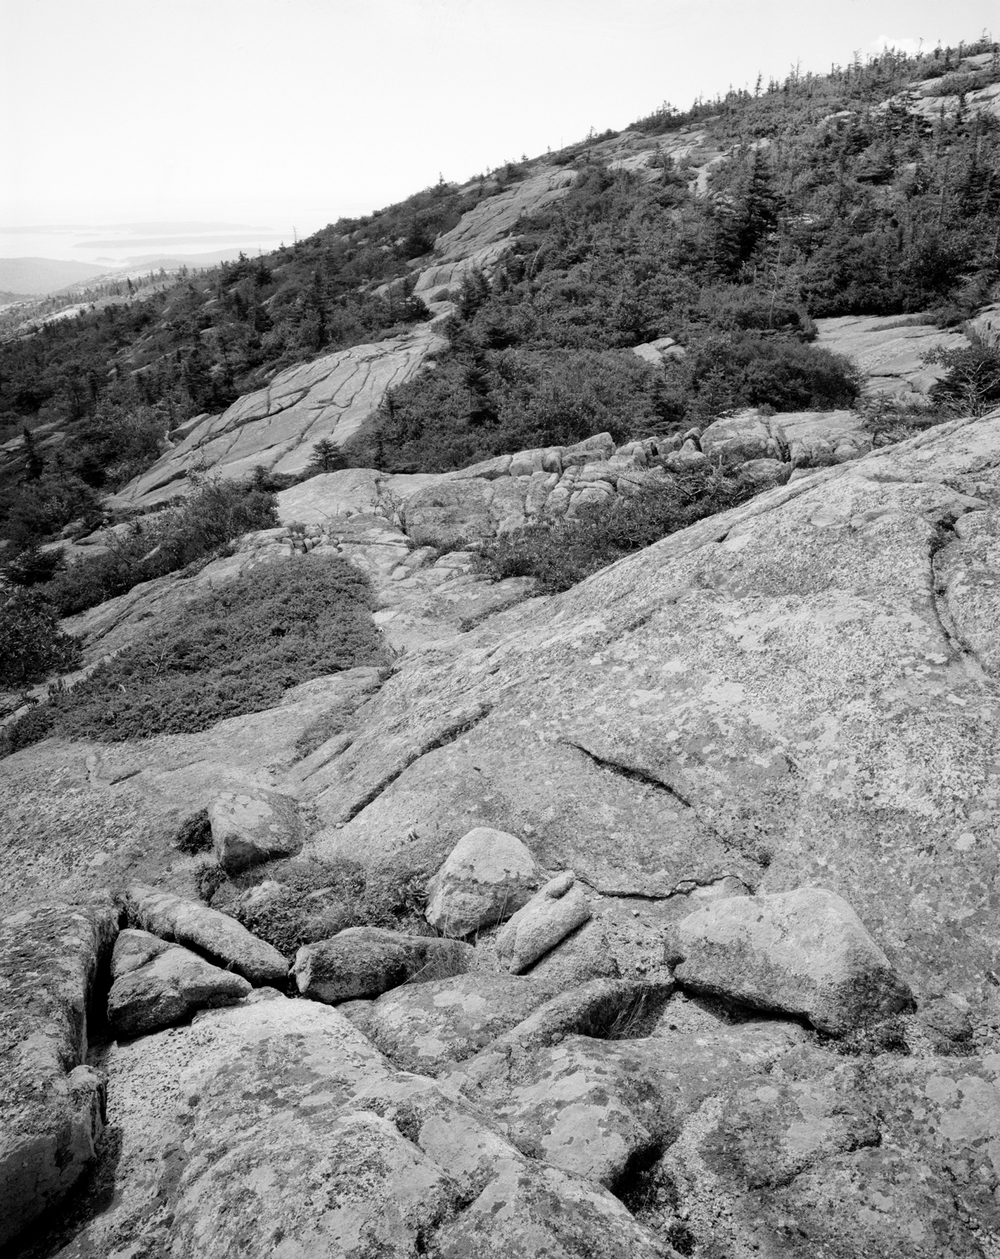 Cadillac Mountain. Acadia National Park, Maine. 1999.